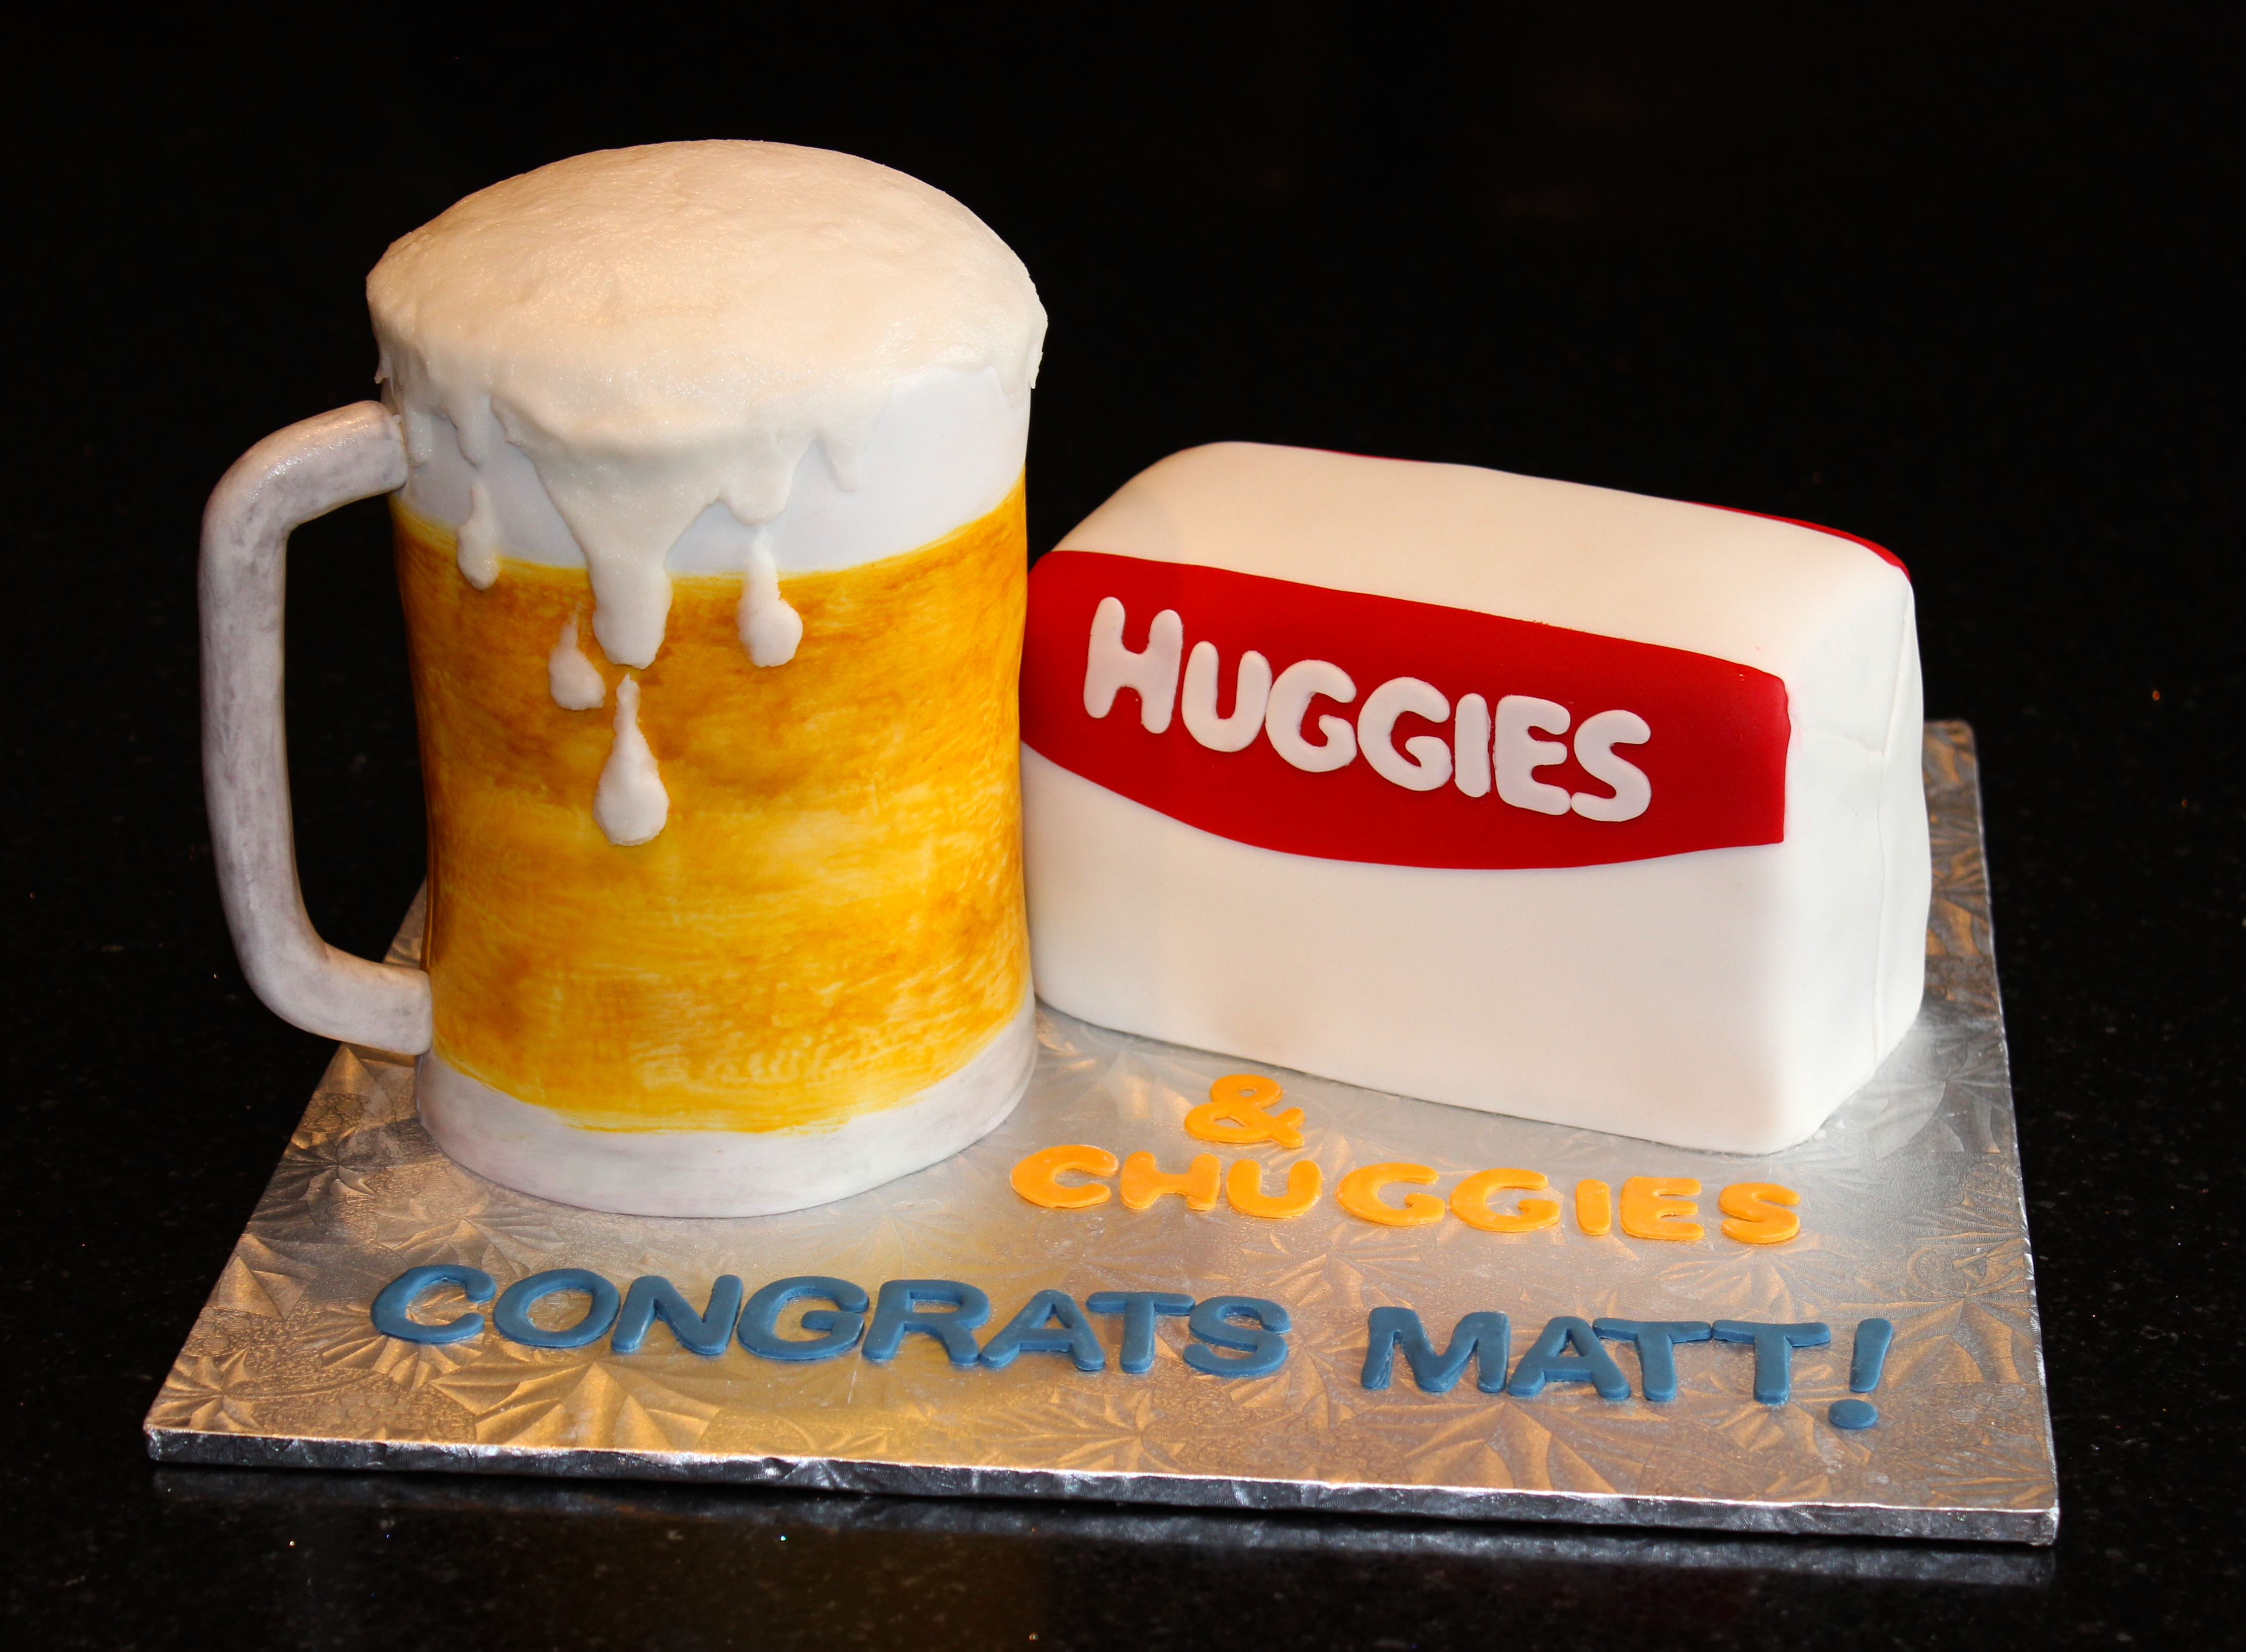 3D Huggies and Chuggies Diaper Party Cake